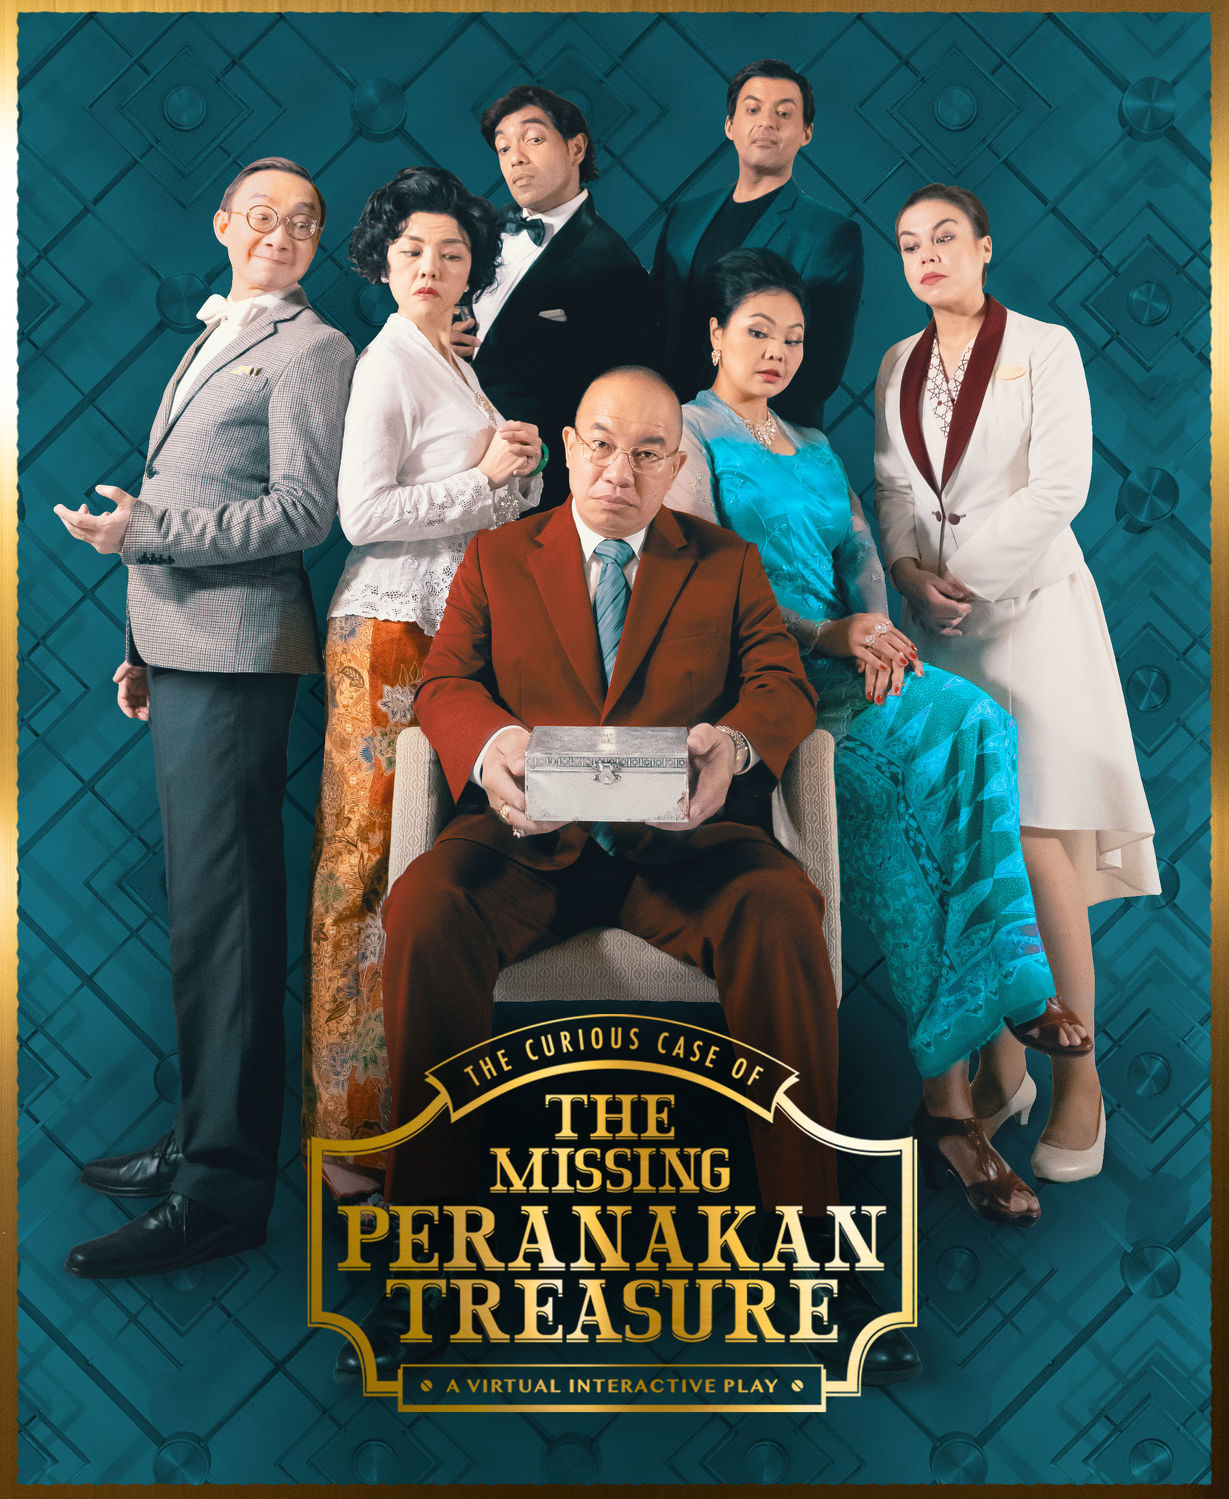 The Curious Case of the Missing Peranakan Treasure - THE EDGE SINGAPORE